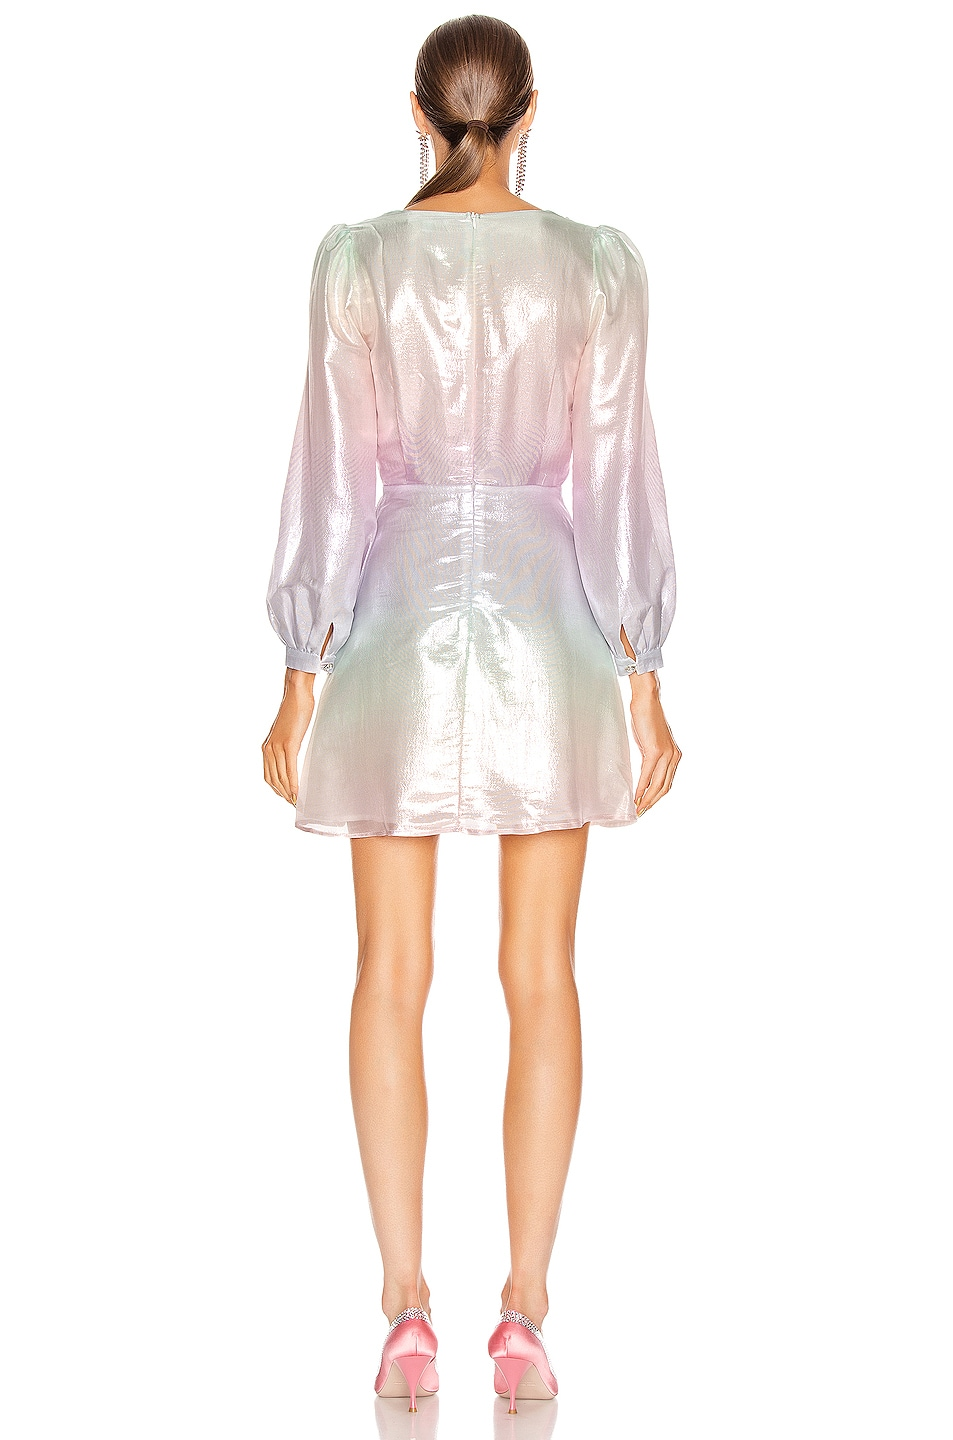 Image 3 of Olivia Rubin Meg Dress in Pastel Ombre Metallic